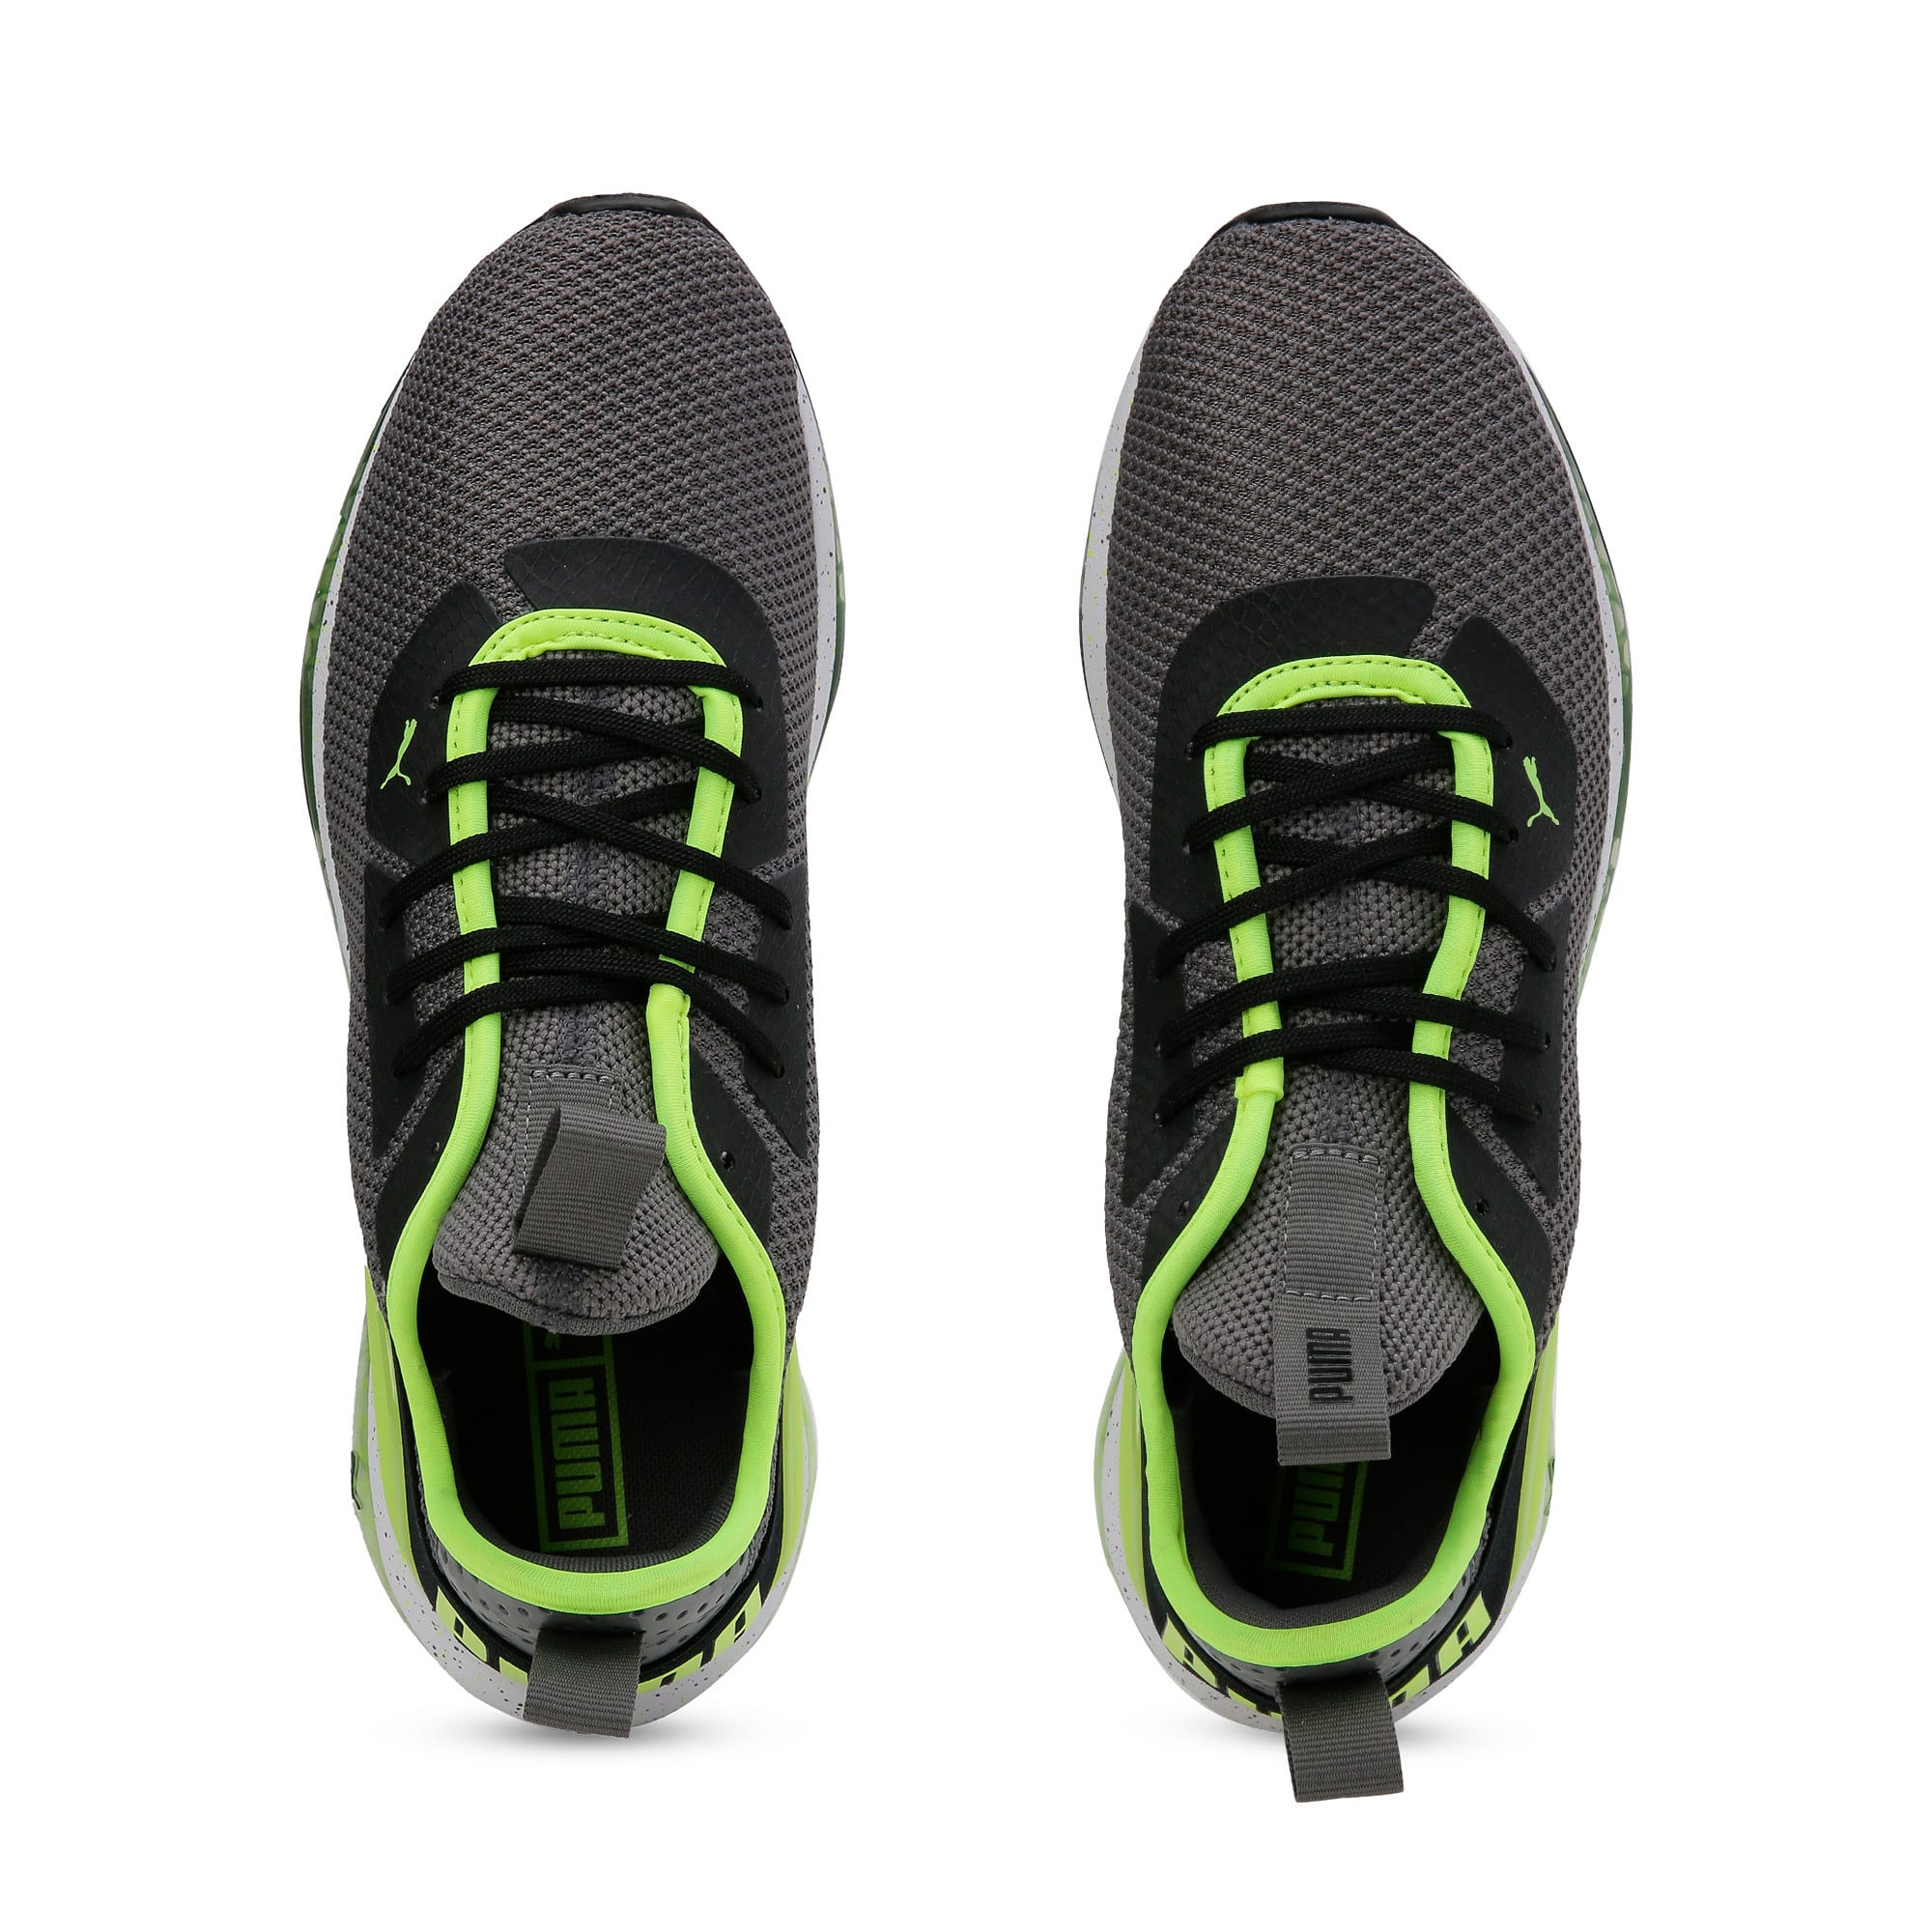 Thumbnail 8 of Cell Descend Weave Running Trainers, CASTLEROCK-Black-Yellow, medium-IND